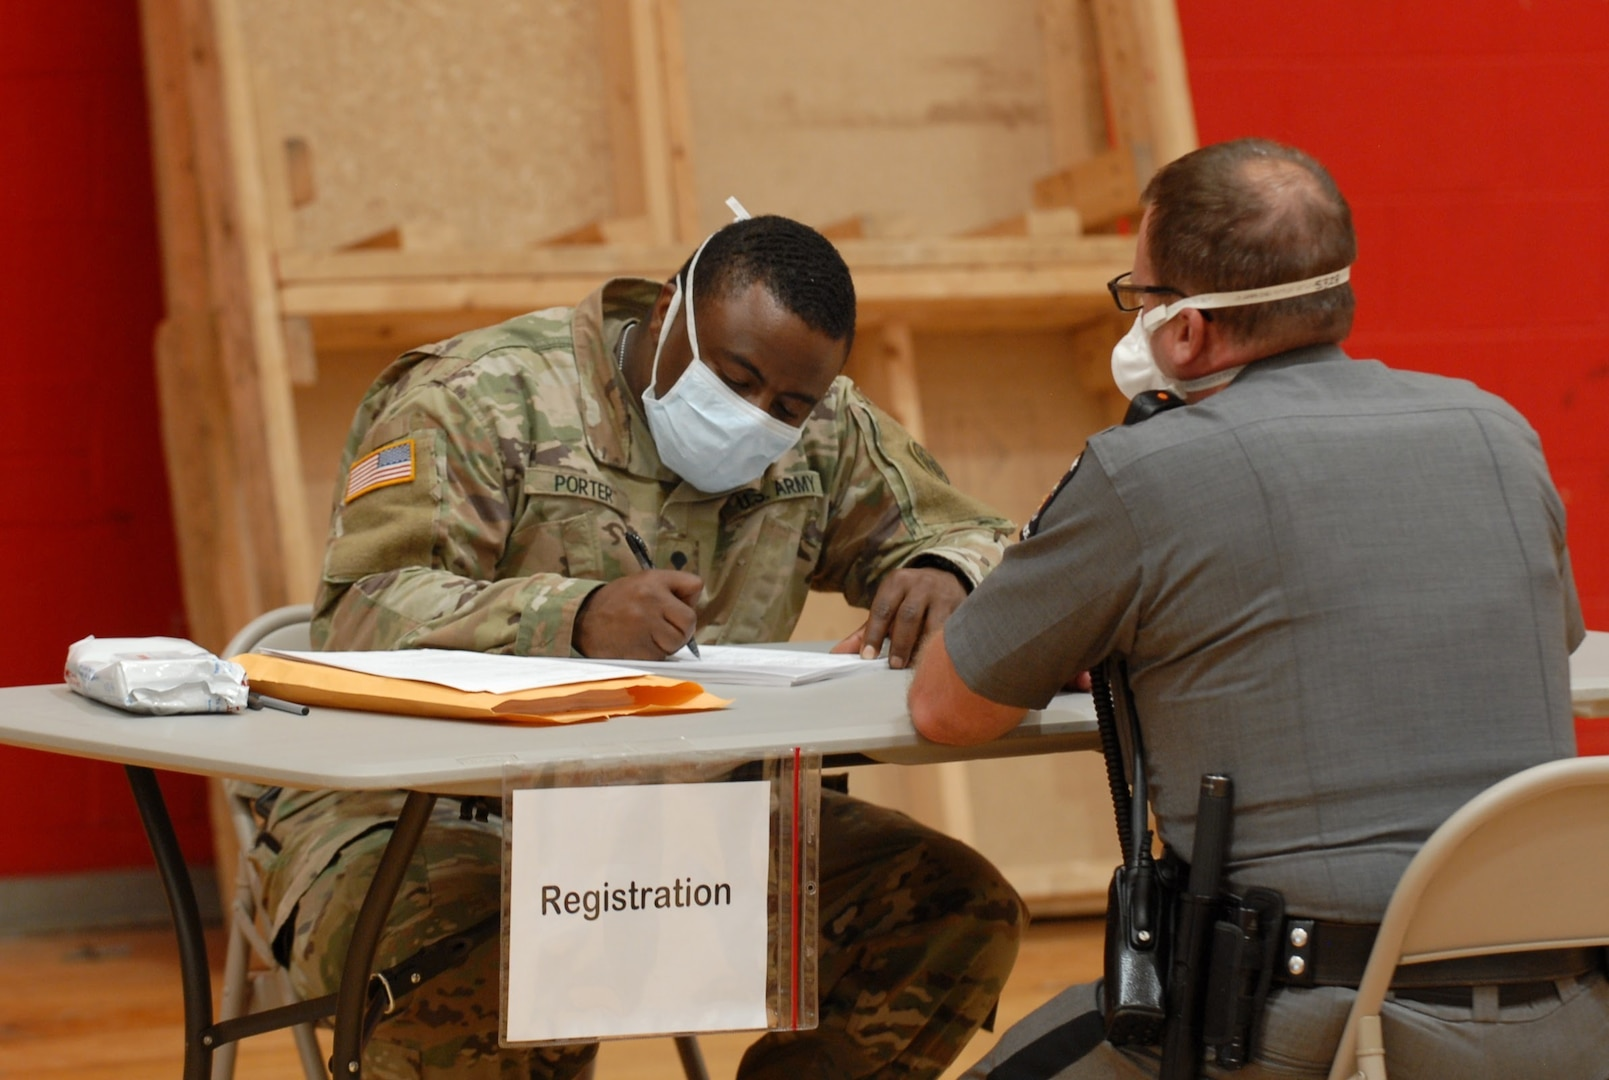 Army National Guard Spc. Matthew Porter, assigned to D Company, 427th Brigade Support Battalion, collects information from a member of the New York State Police at a COVID-19 antibody testing site in Williamsville, New York, May 5, 2020. Wedgwood and other members of the New York National Guard are supporting state agencies at antibody testing sties across New York.